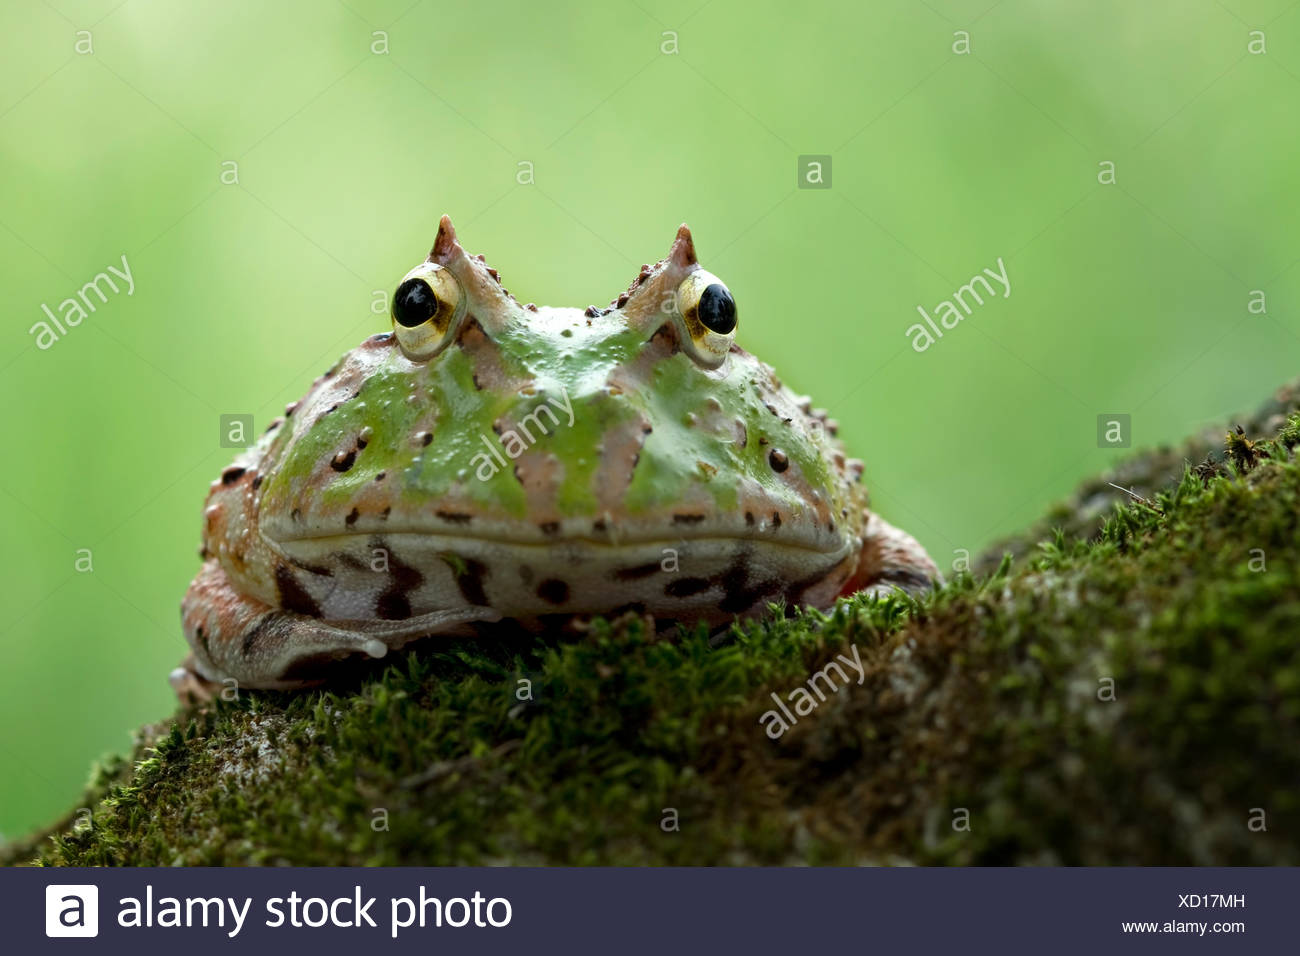 Pacman frog sitting on a rock covered in moss - Stock Image